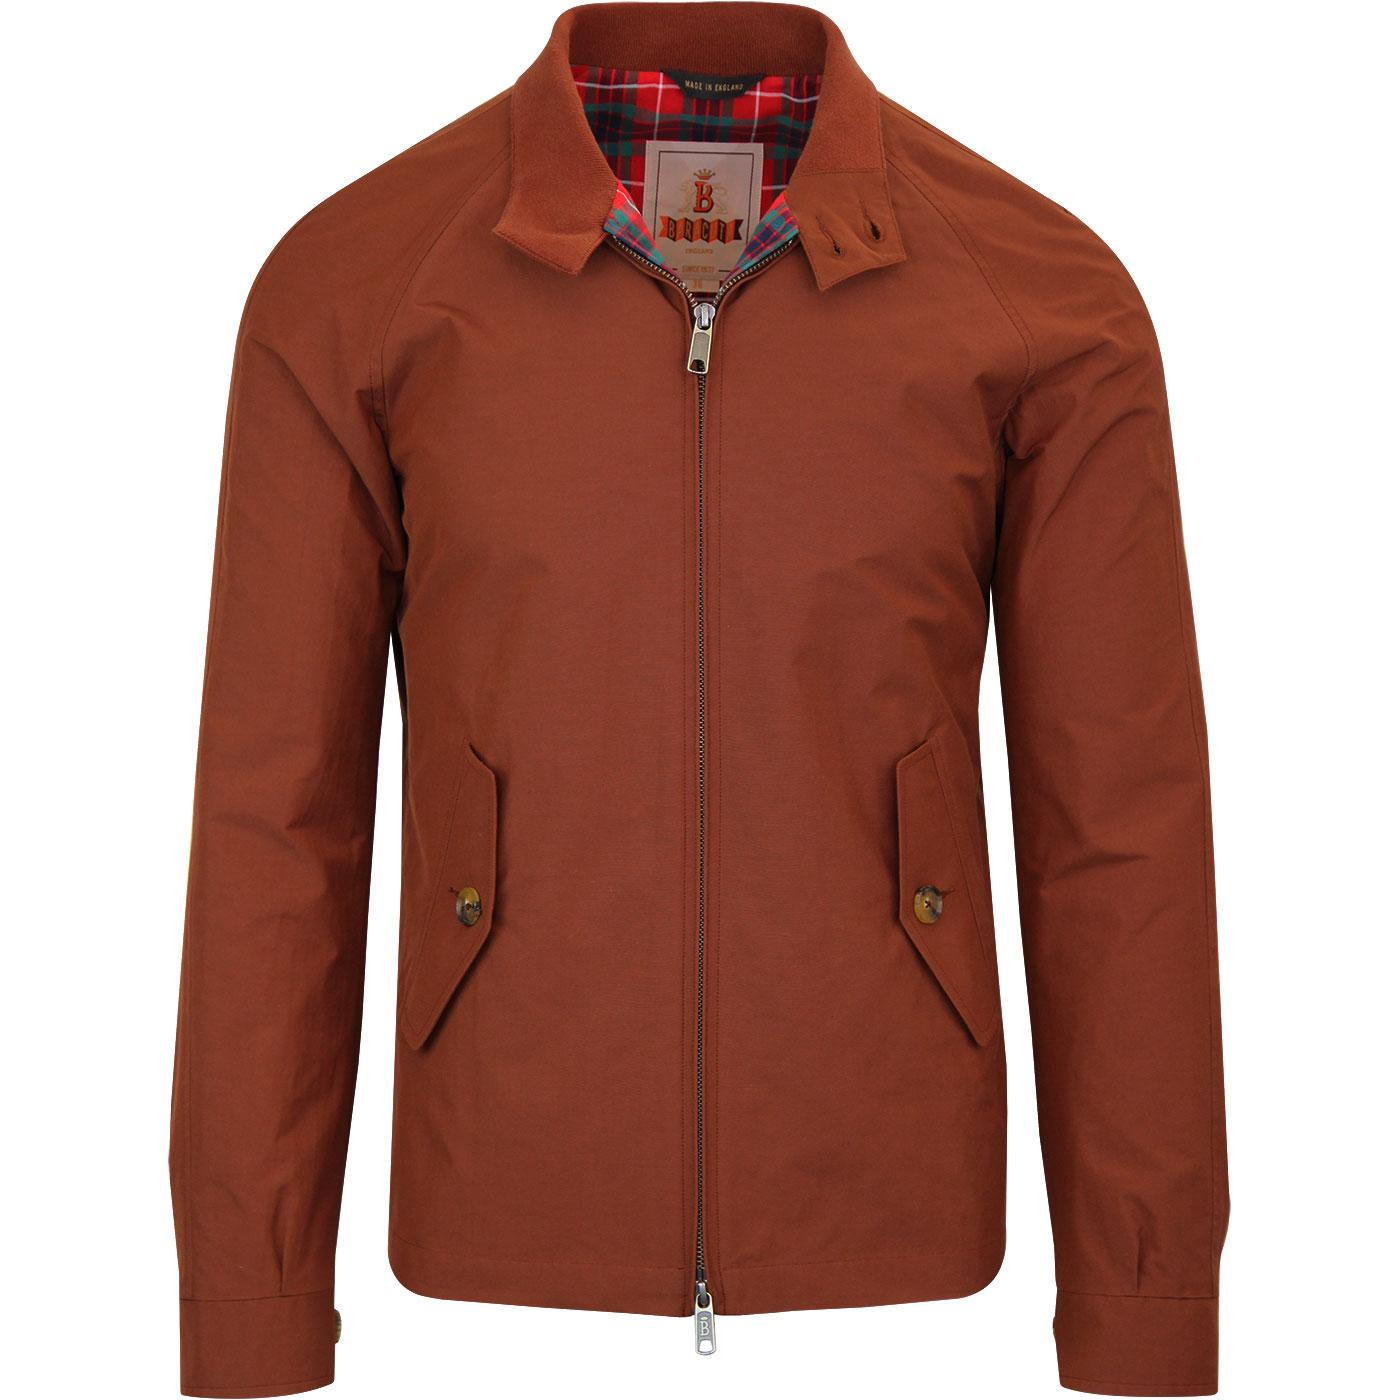 BARACUTA G4 Original Made in England Harrington C